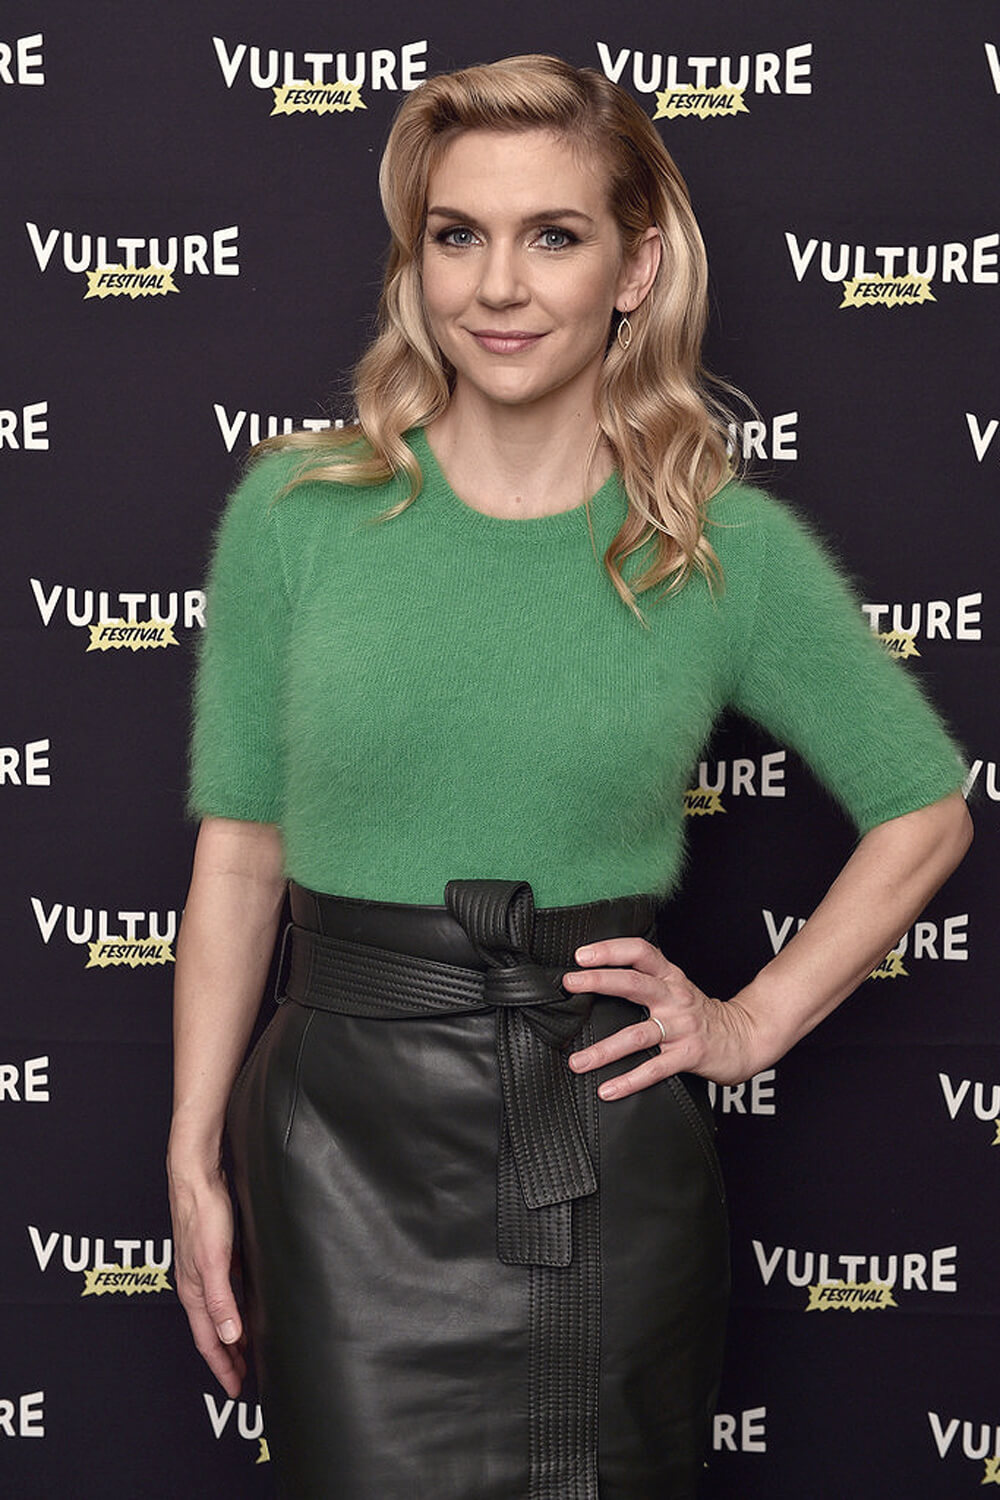 Rhea Seehorn attends the Vulture Festival at Milk